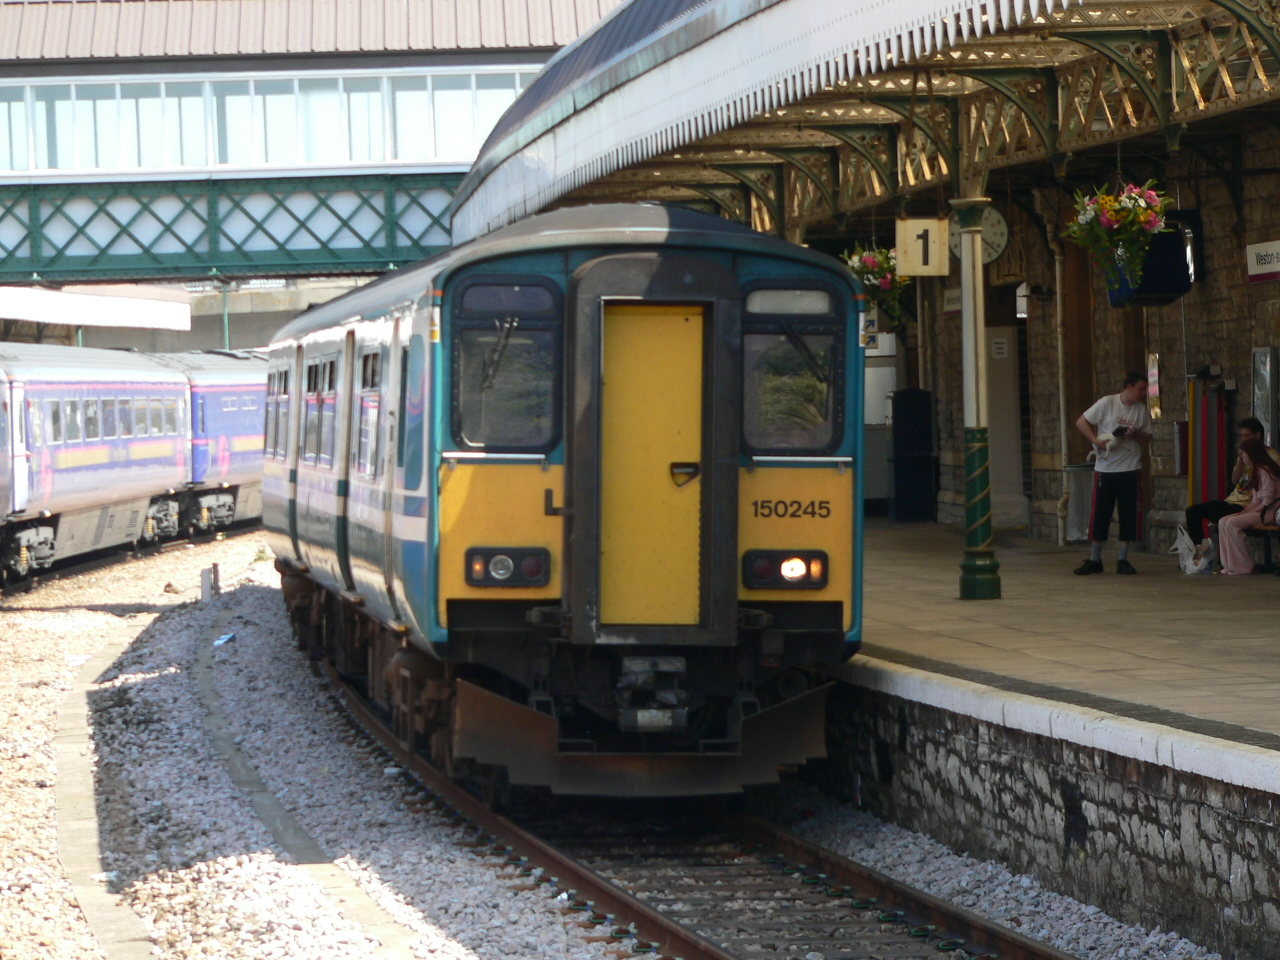 File:Arriva Trains Wales